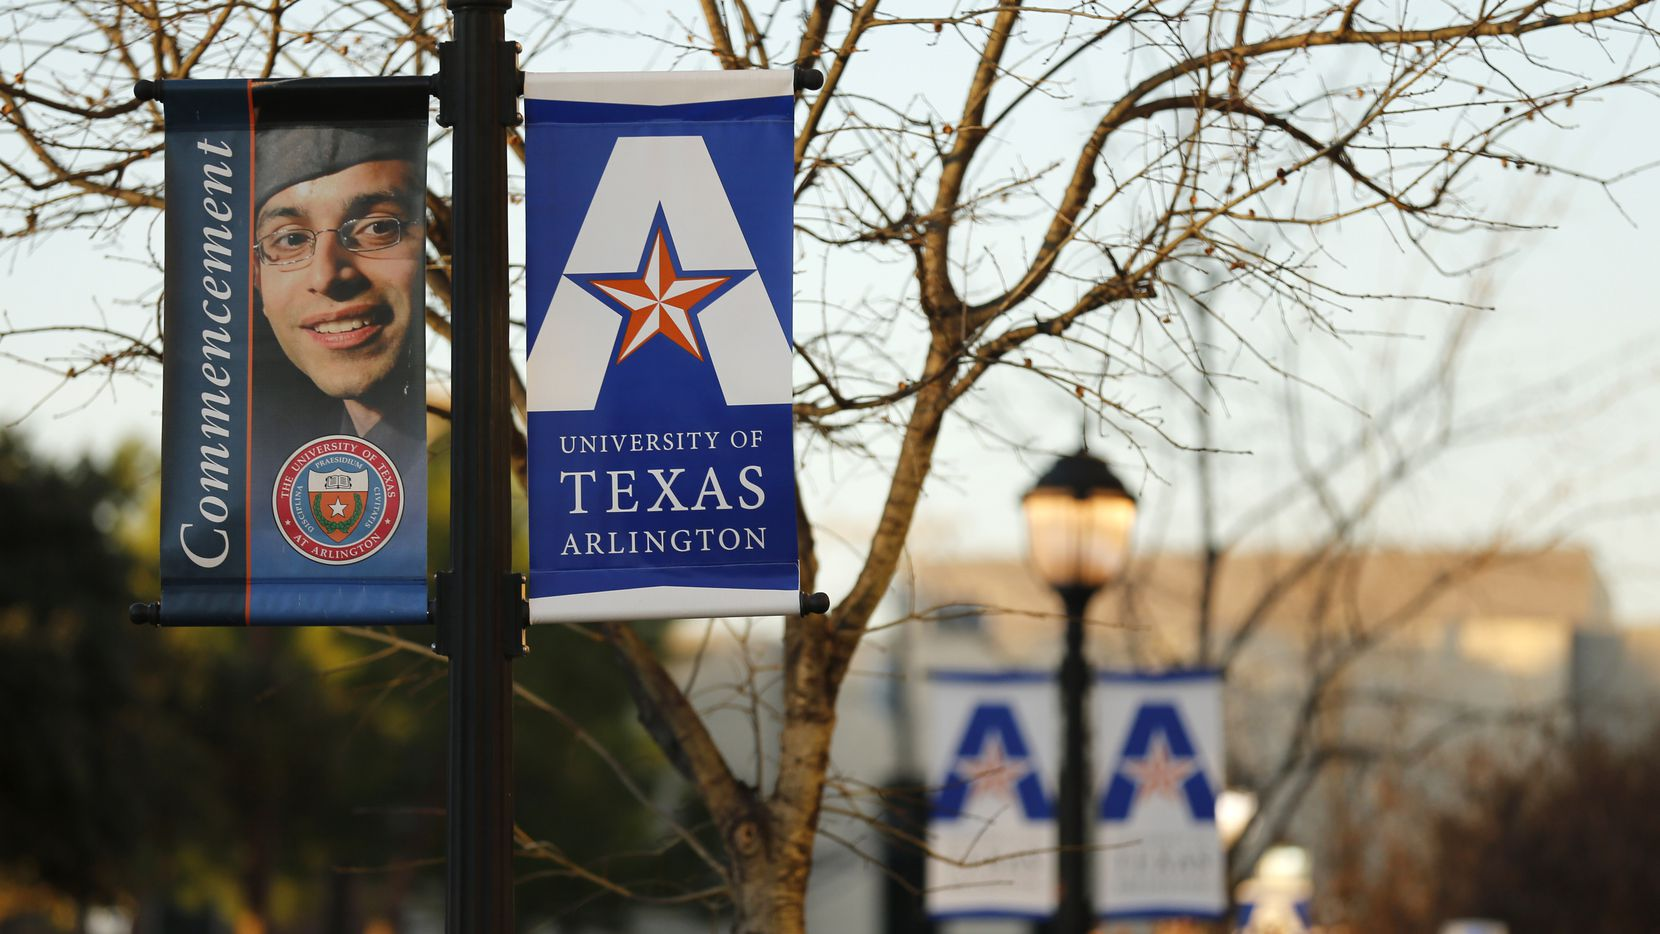 University of Texas at Arlington banners announcing commencement near College Park Center at the UTA in Arlington, Texas on Friday, December 13, 2019.